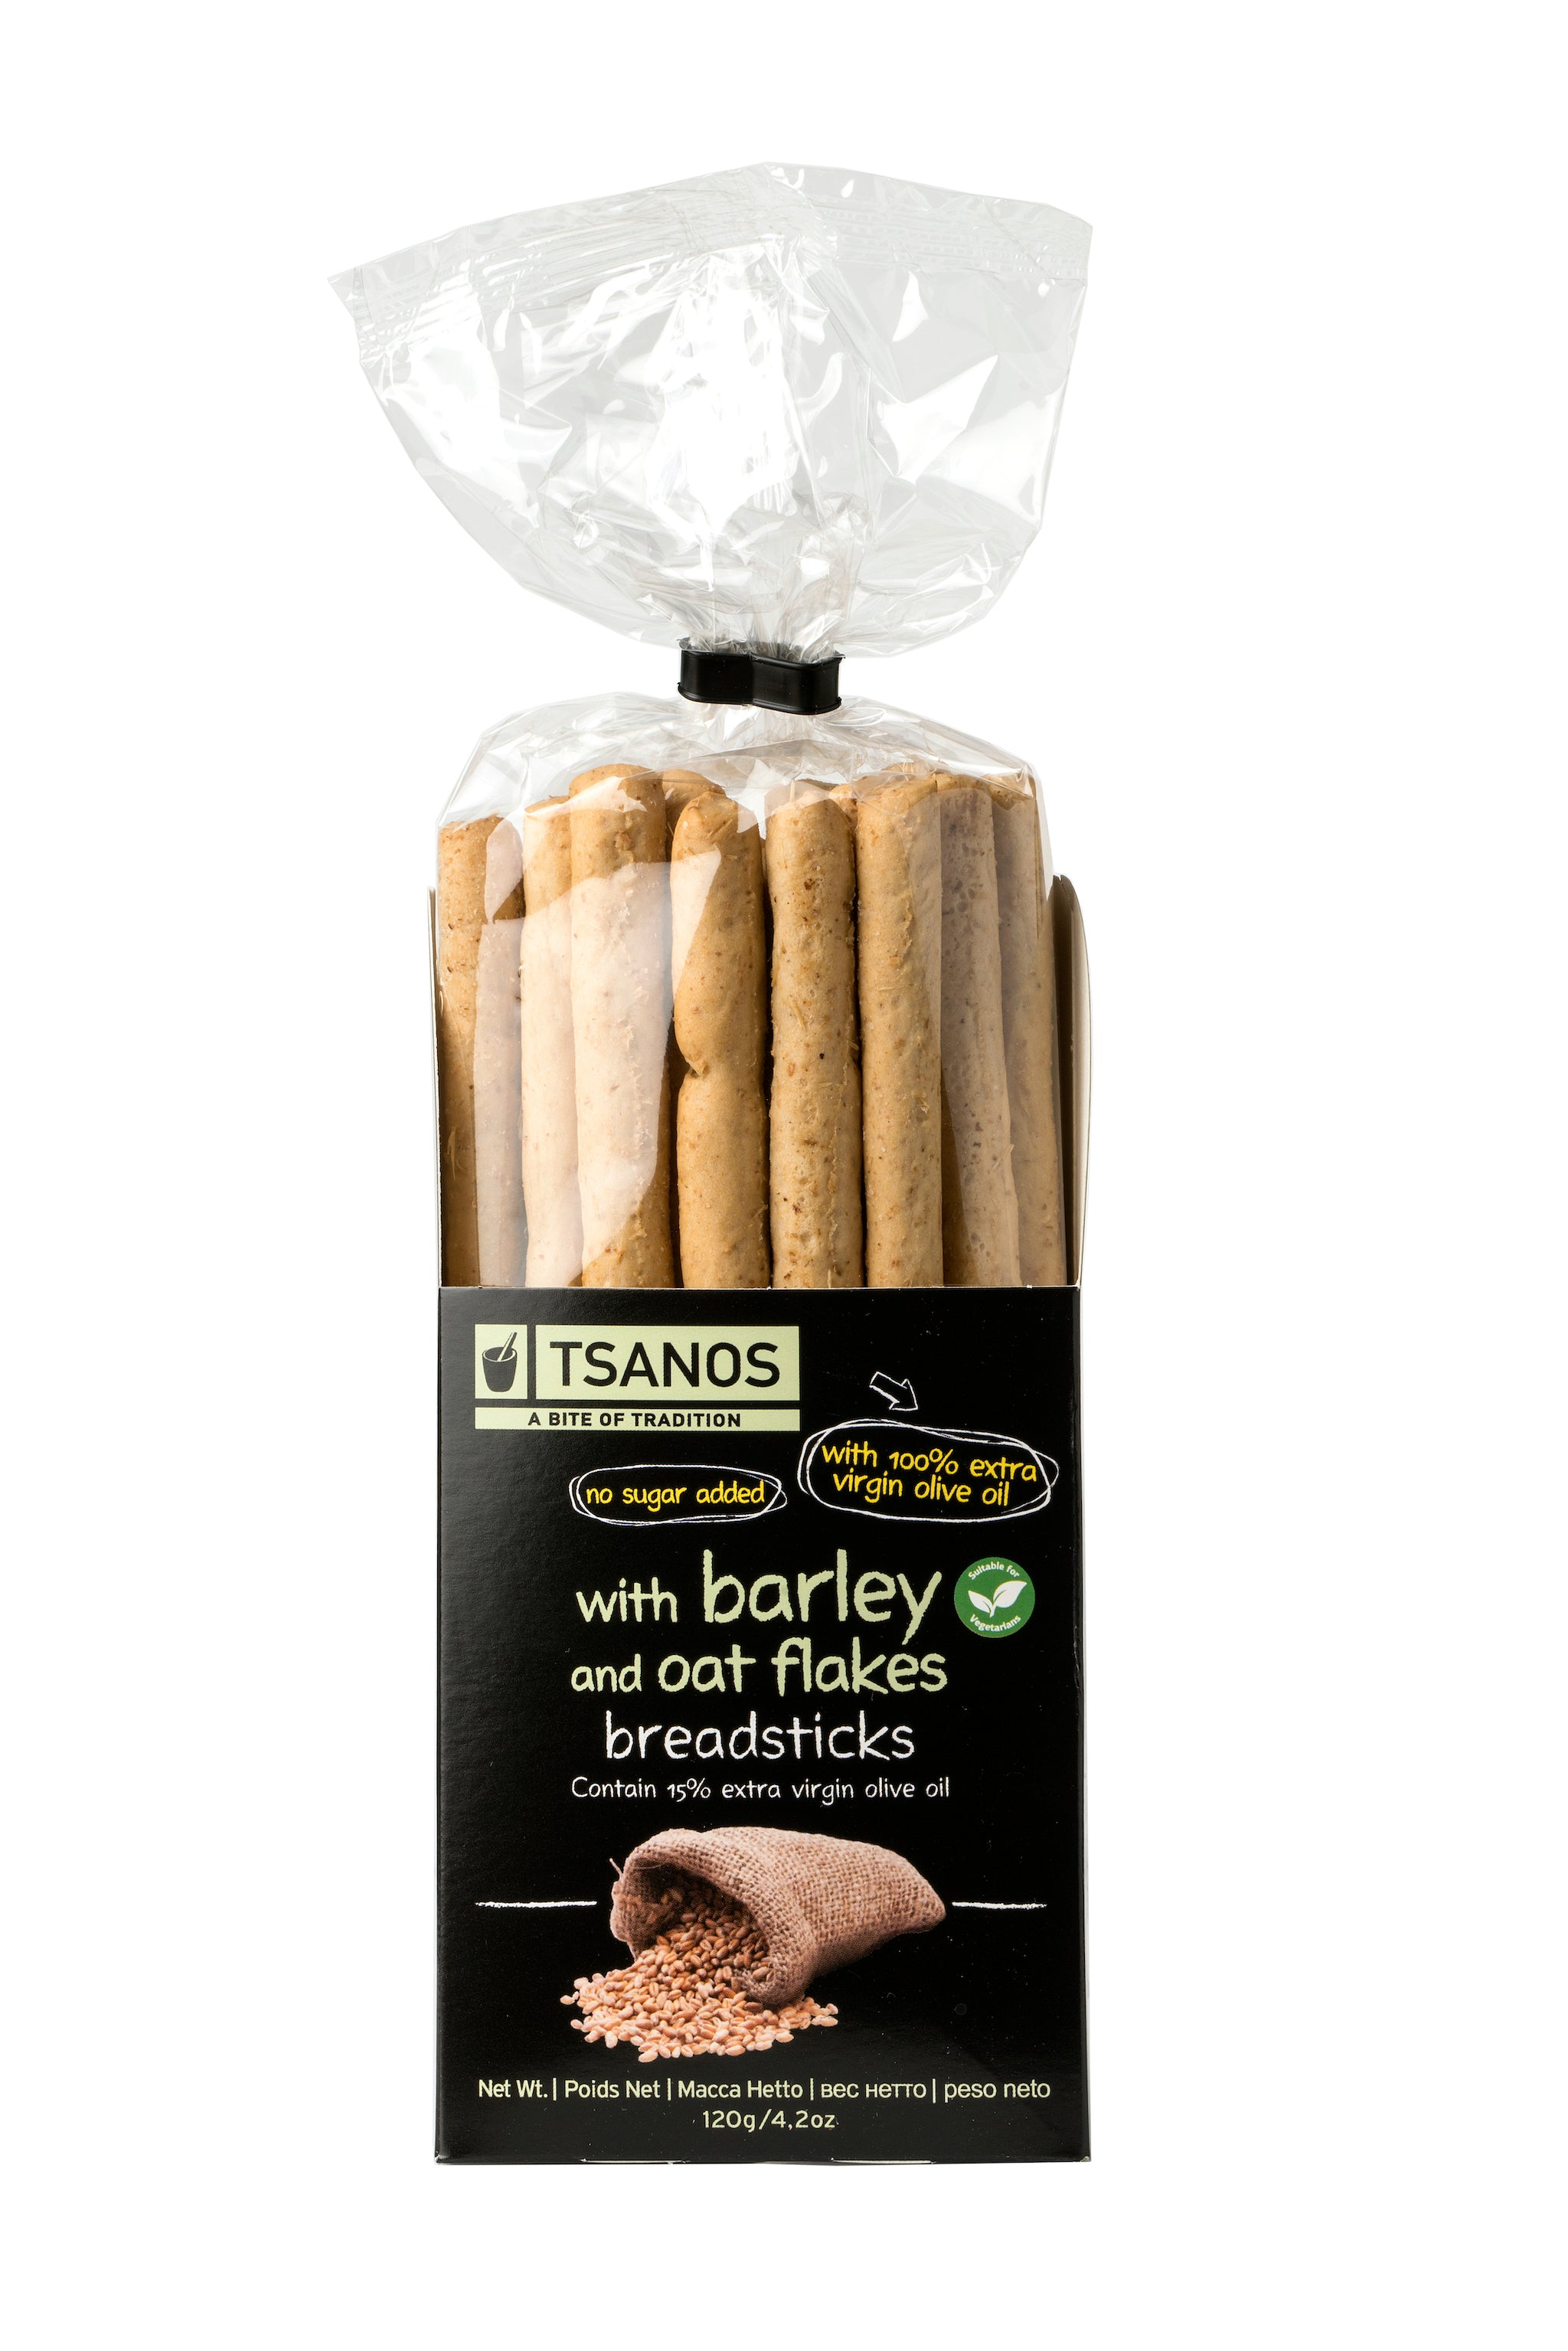 Tsanos Breadsticks with Barley and Oat Flakes